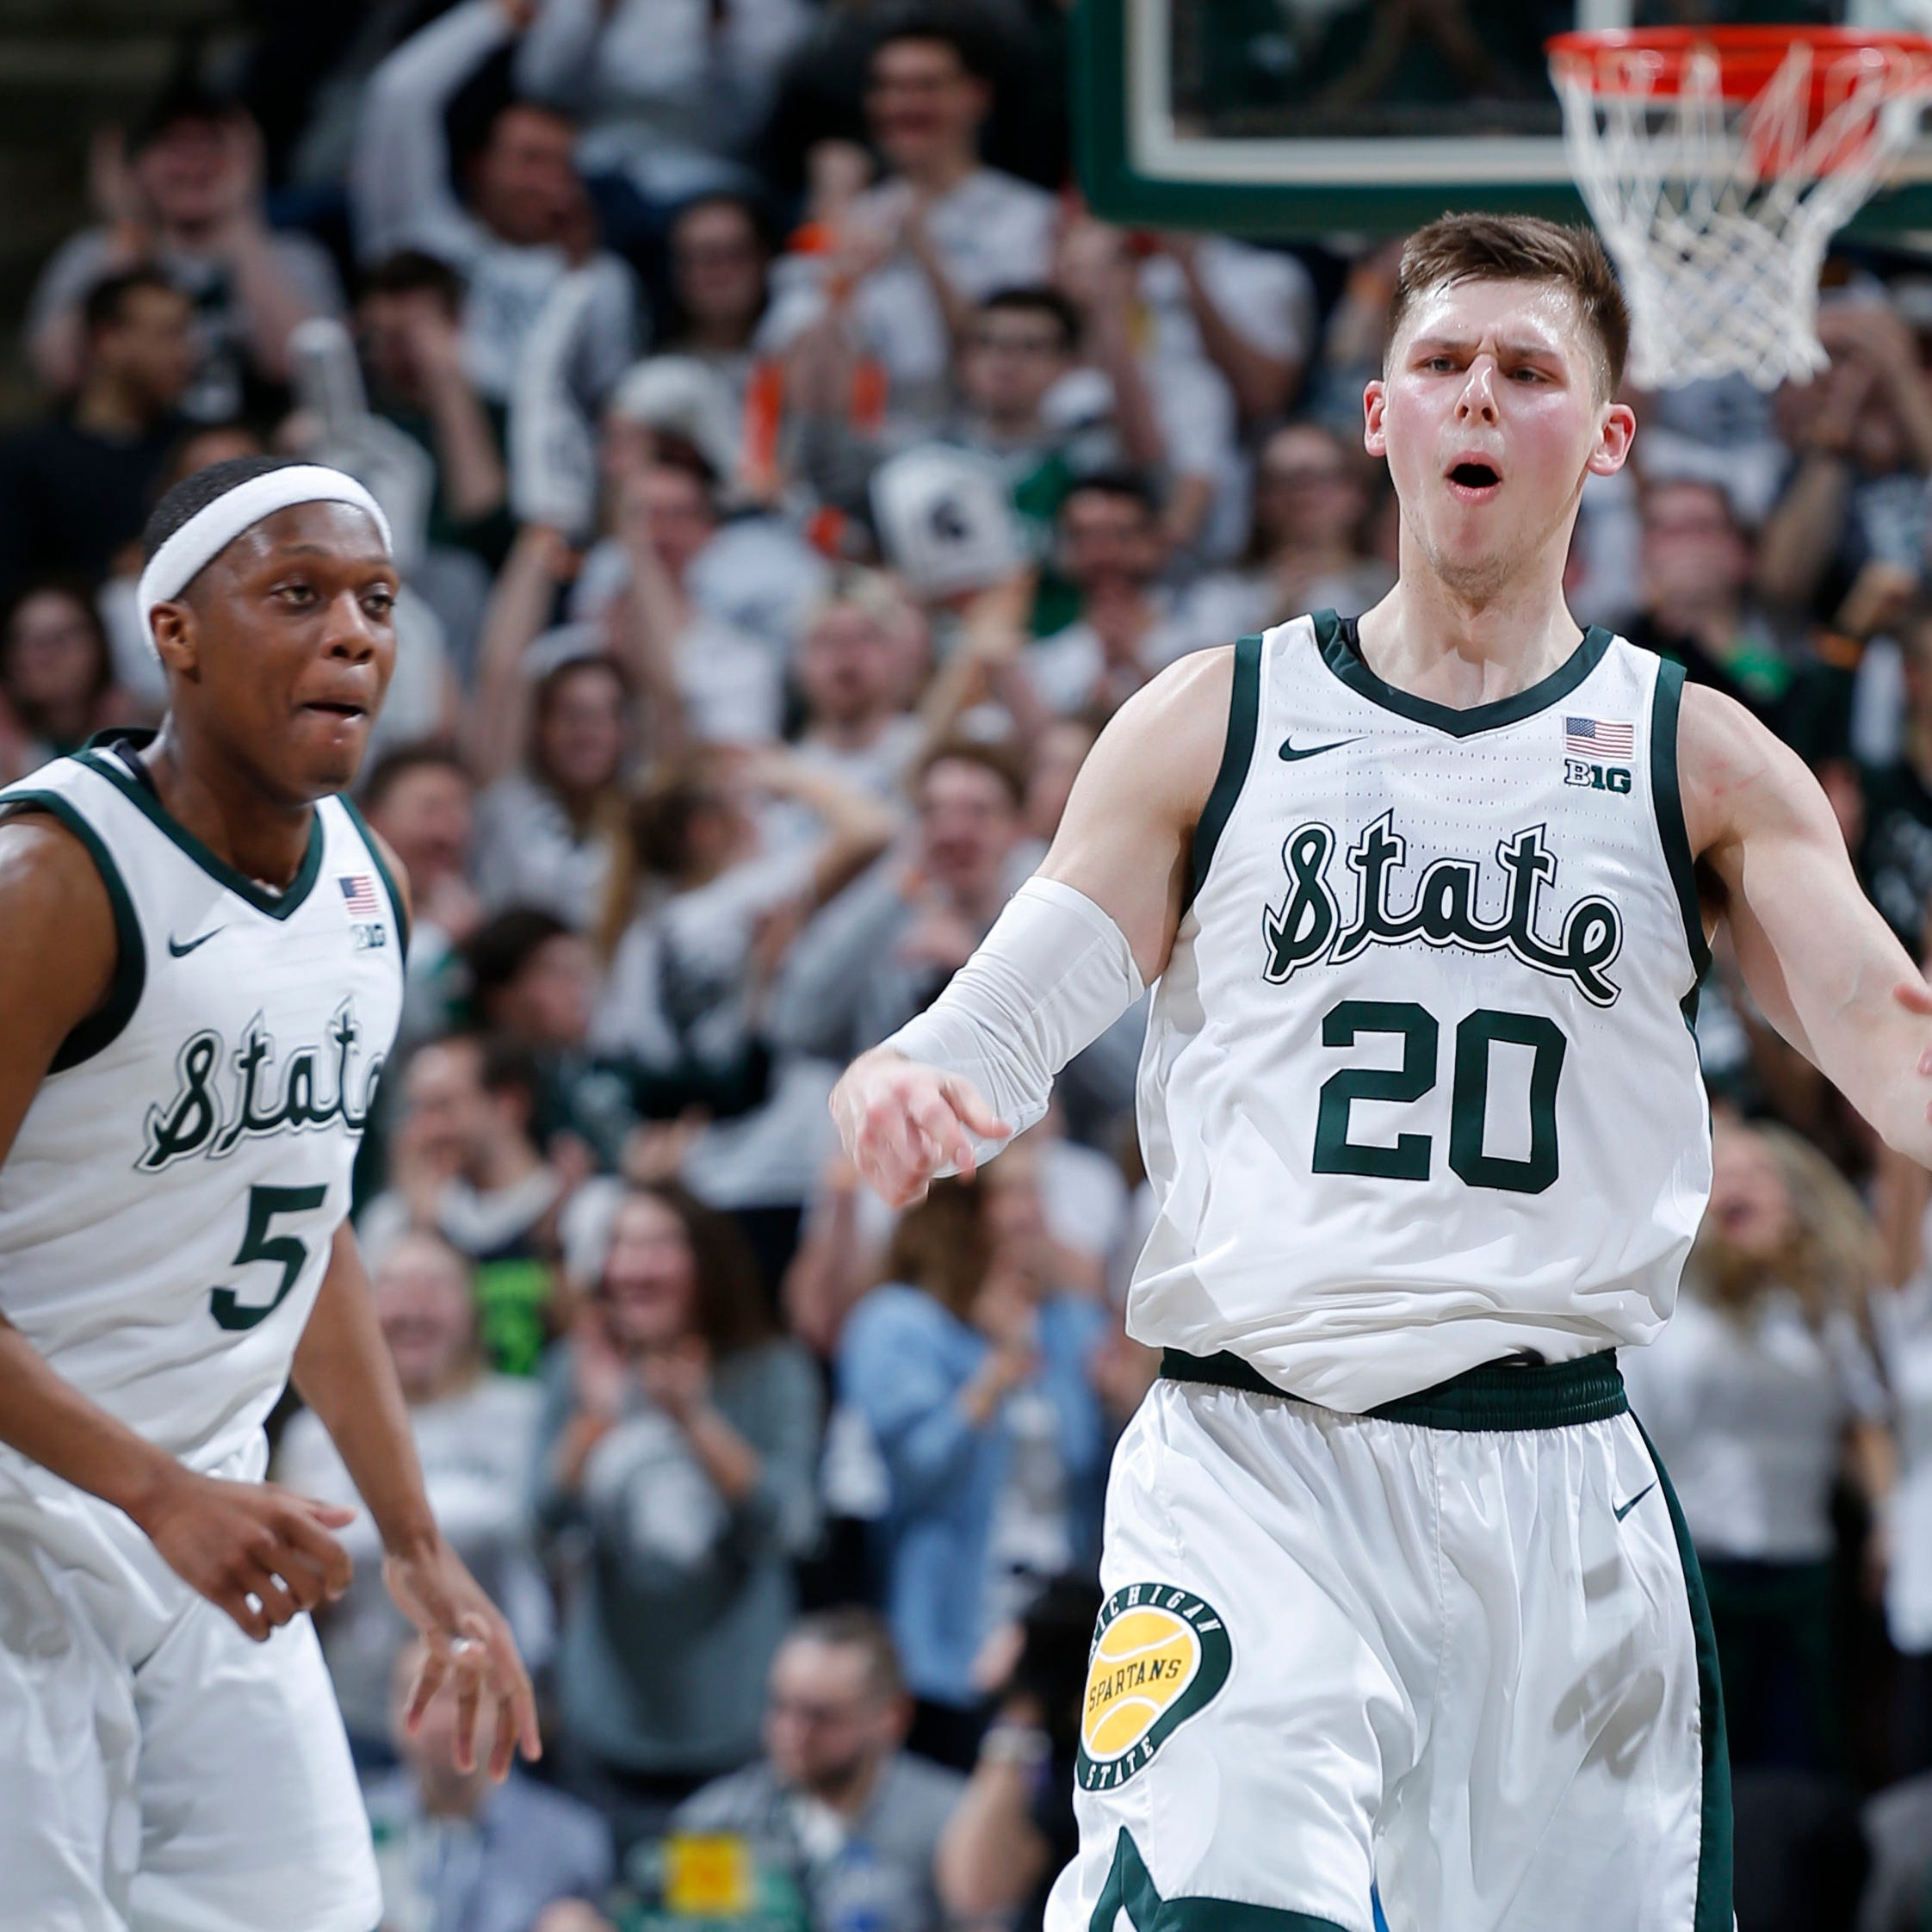 Couch: MSU's Cassius Winston, Matt McQuaid and the commitment to winning above self